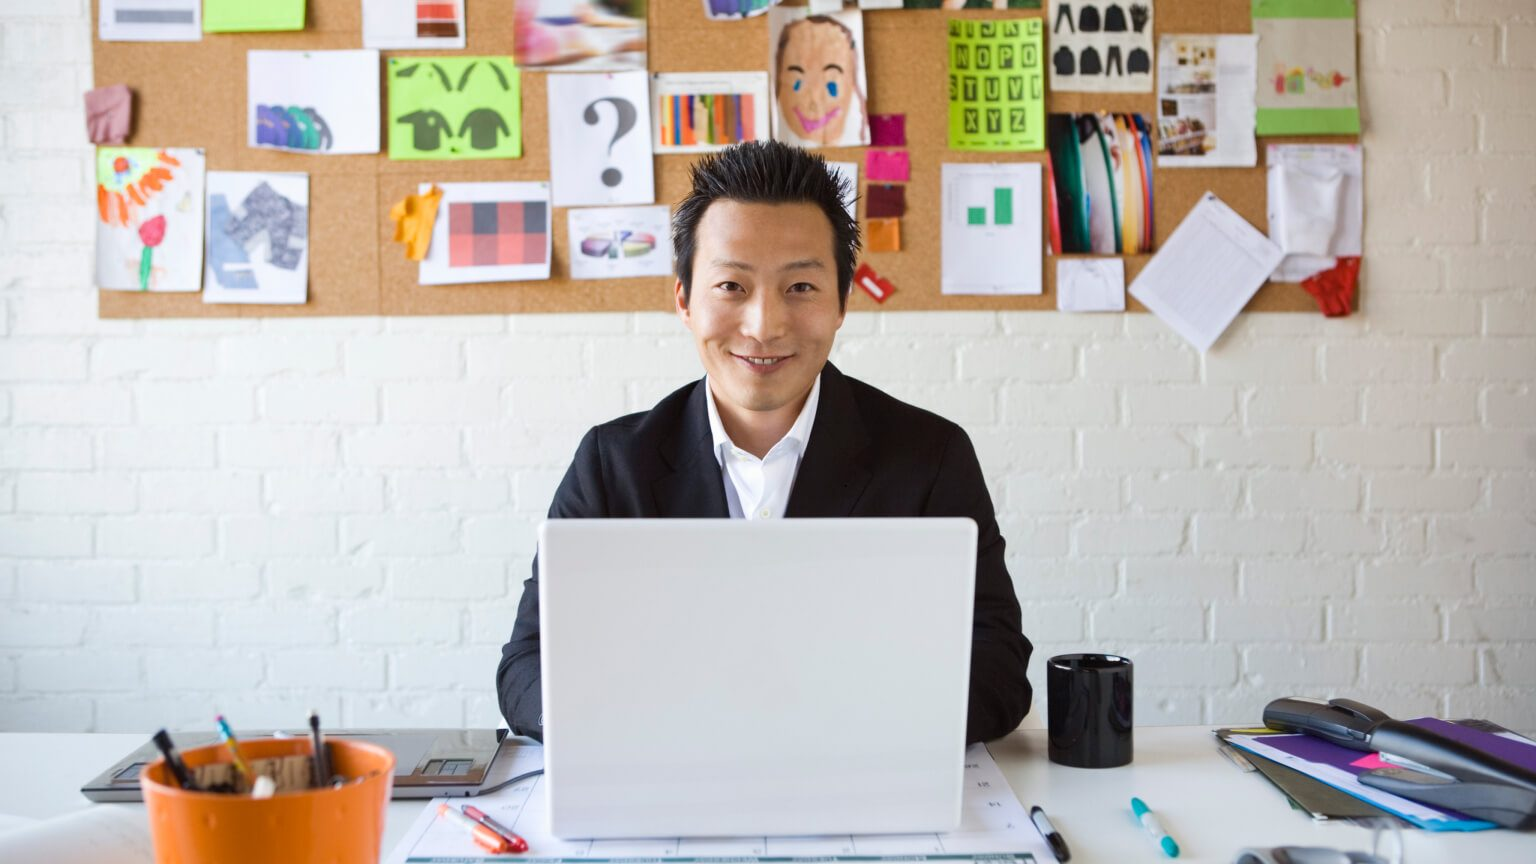 Asian man sitting in front of laptop with image board in the background